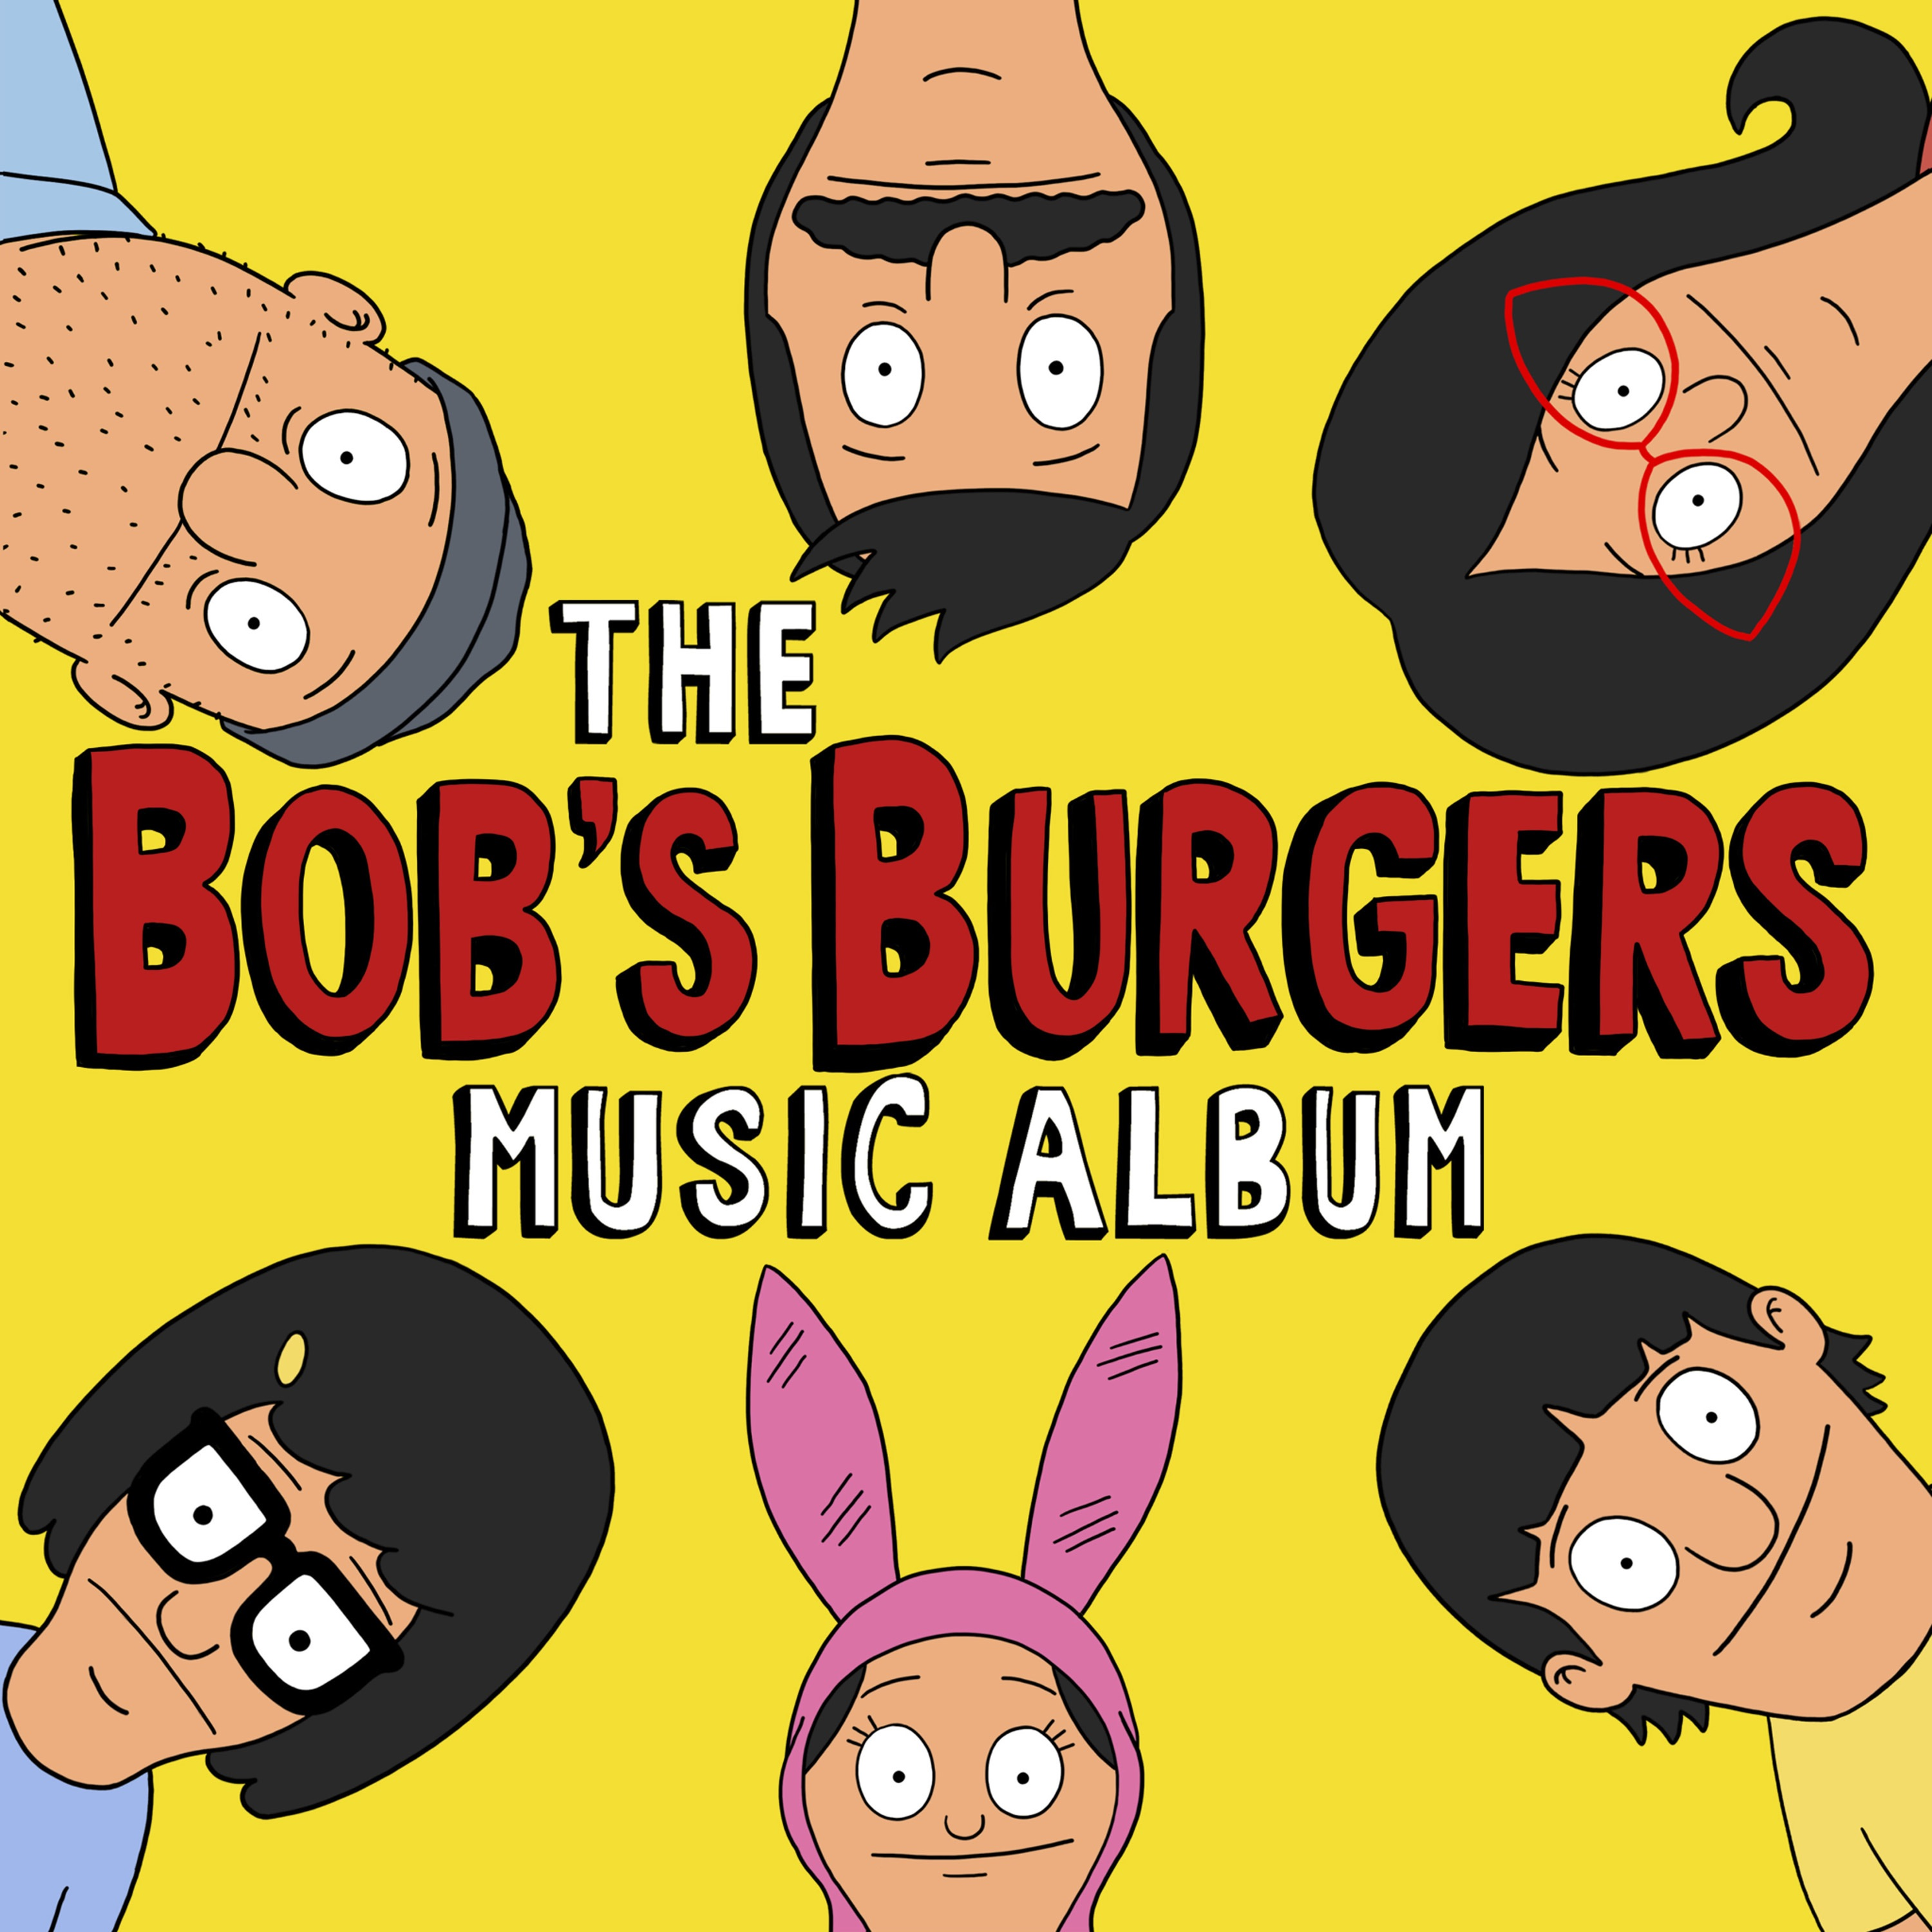 MP3 Songs Online:♫ The Bob's Burgers Theme Song - Bob's Burgers album The Bob's Burgers Music Album. Soundtrack,Music,Rock,Soundtrack,Comedy,World,Afro-Beat listen to music online free without downloading.